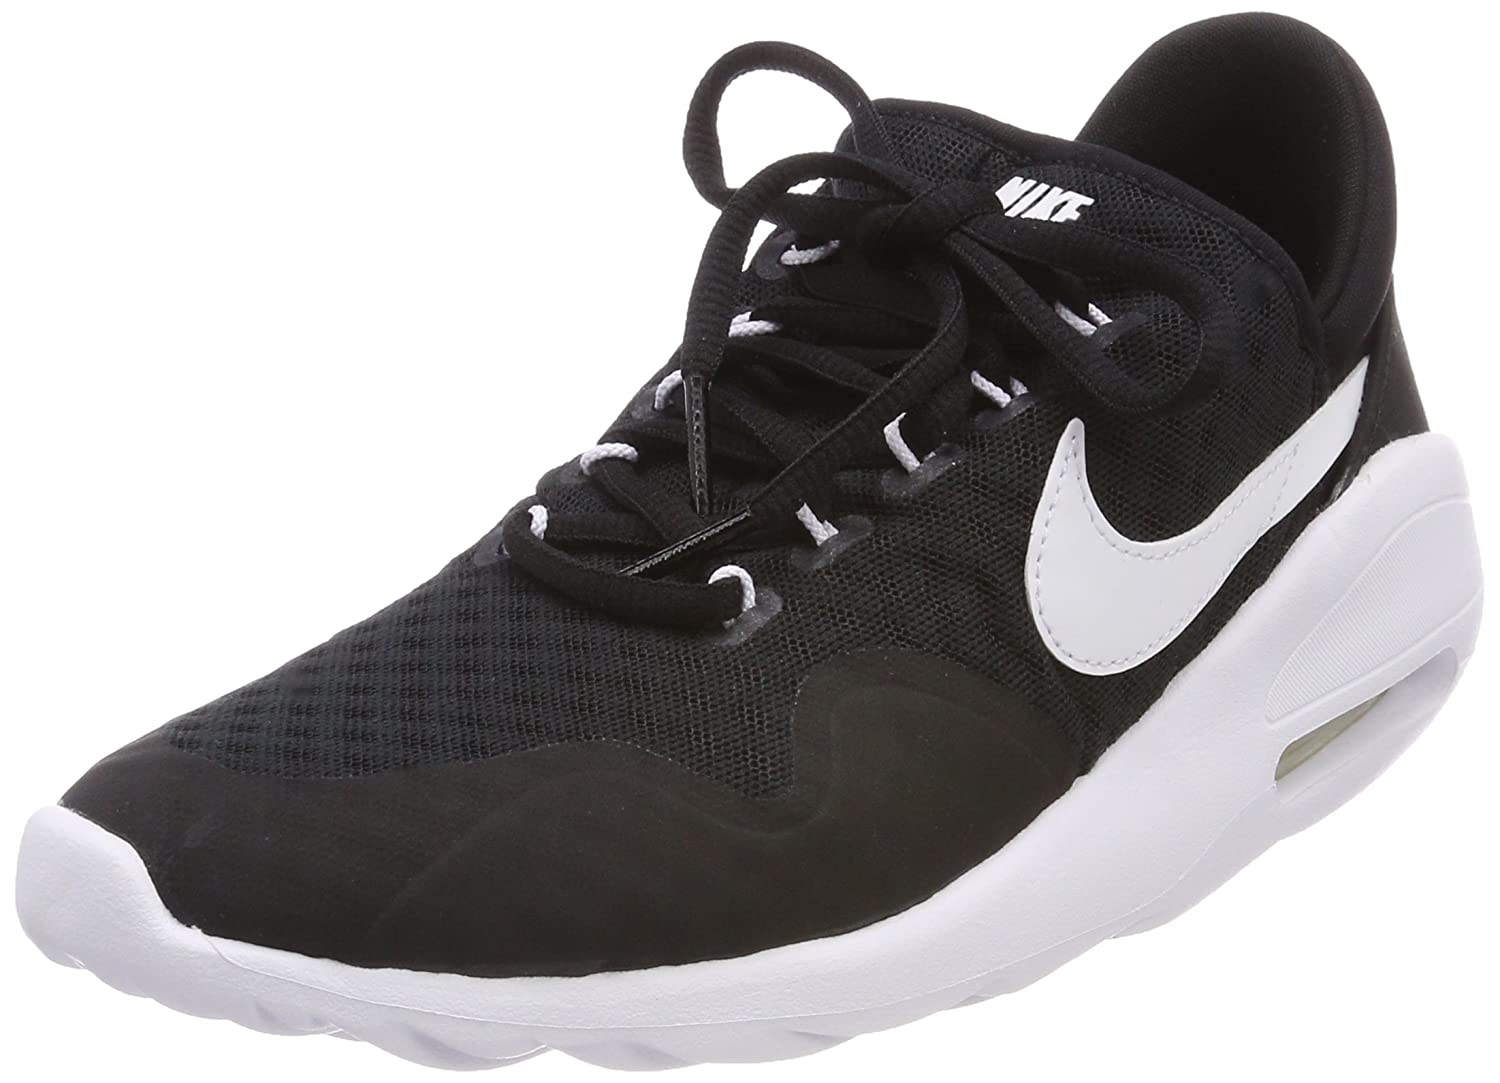 3a375537ee Nike Women's Air Max Sasha Low-Top Sneakers, Black (Black/White-Black-Wh  003), 7.5 UK